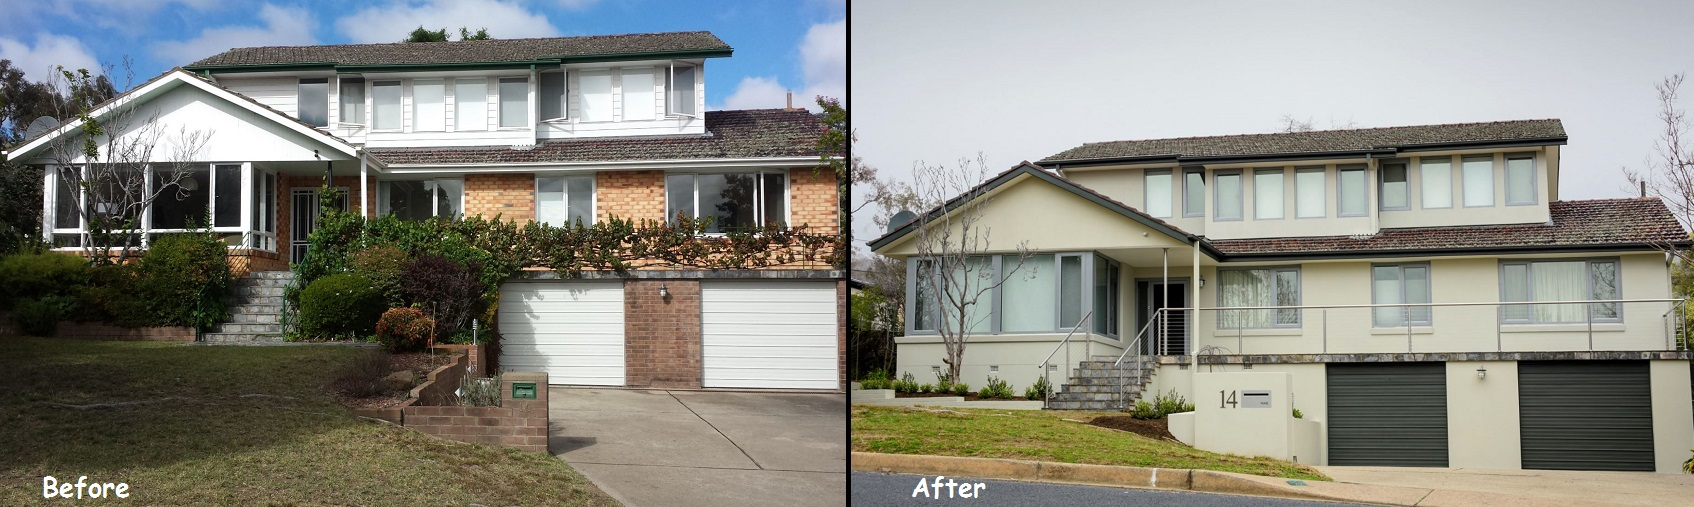 before and after shots larger home renovation